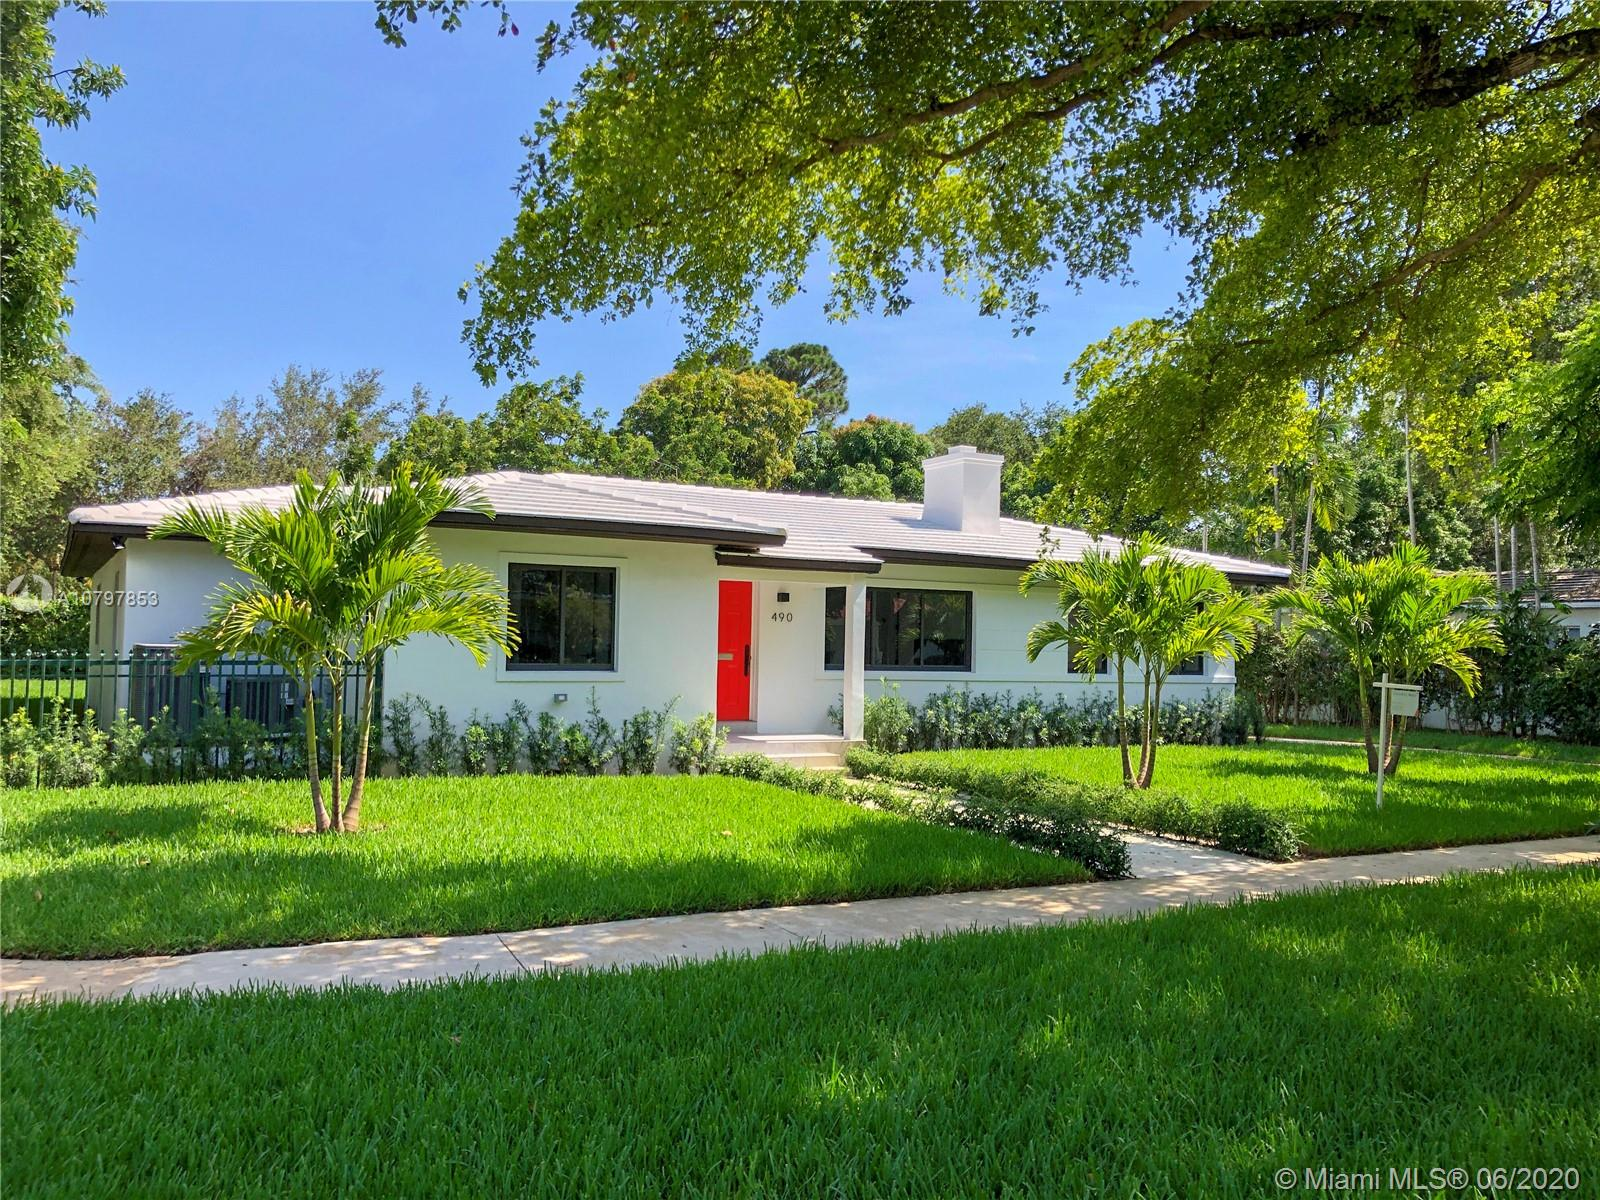 Details for 490 91st St, Miami Shores, FL 33138